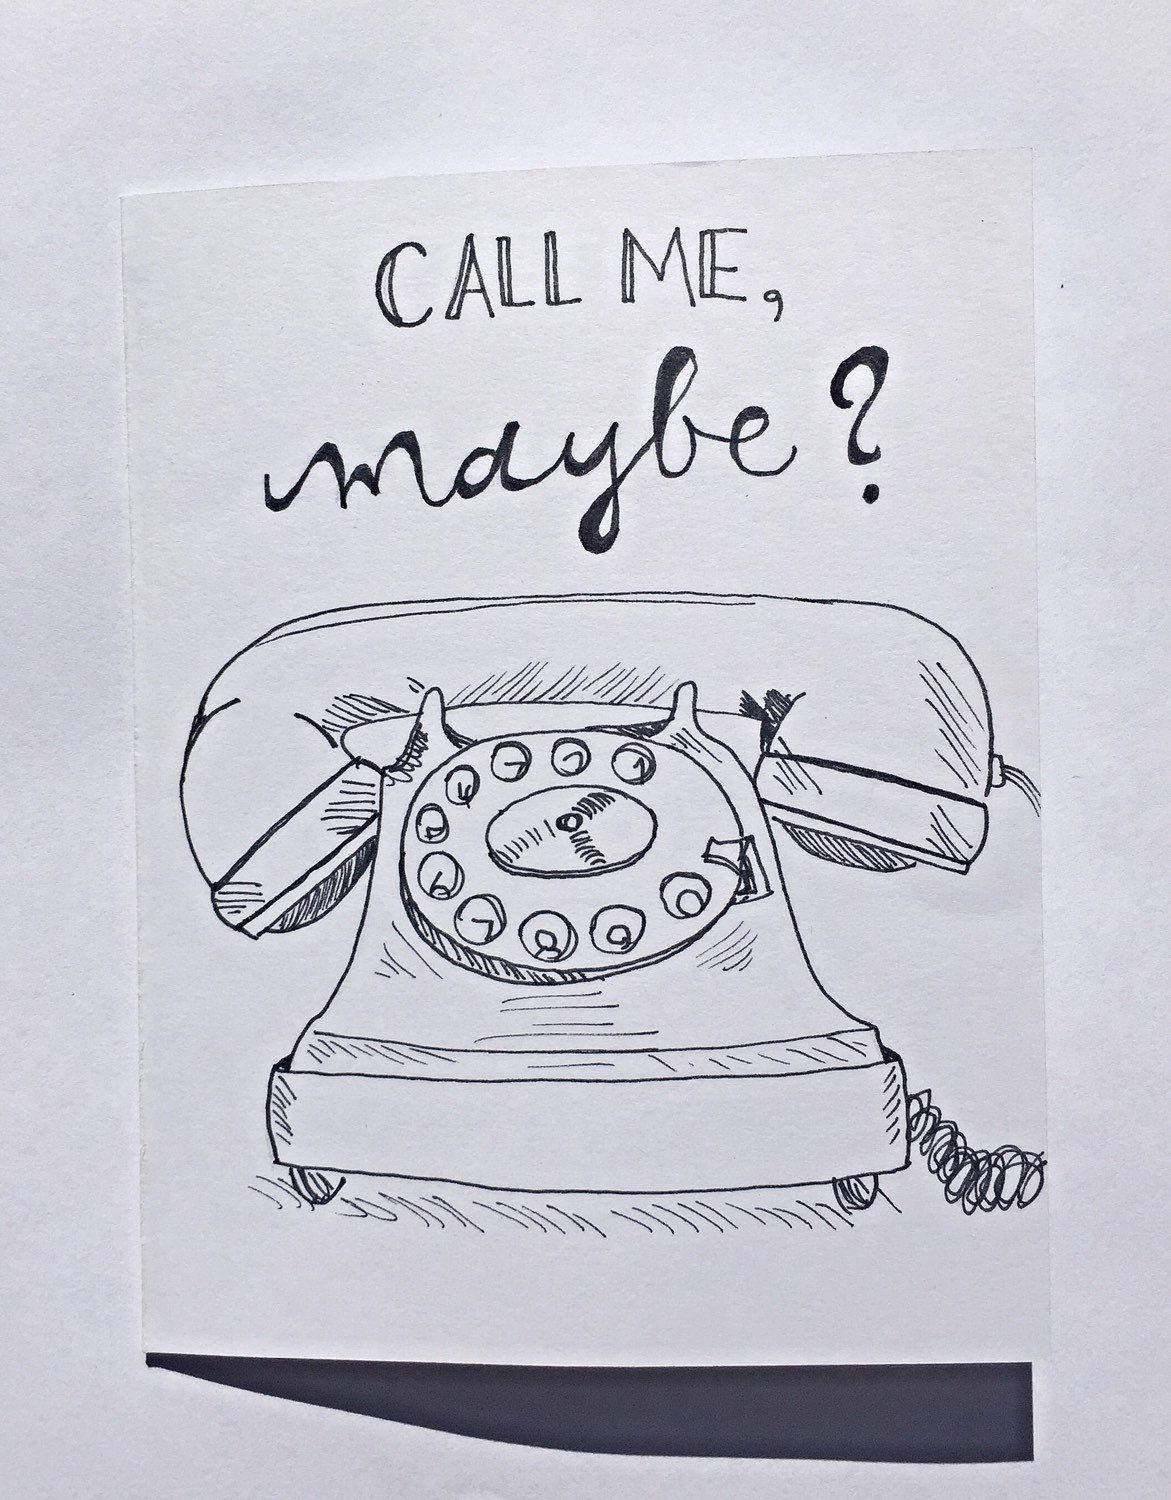 Call me maybe greeting card with rotary phone blank inside greeting card call me maybe blank card funny card friendship best friend dating card telephone rotary phone first date by claireandjamesdesign on m4hsunfo